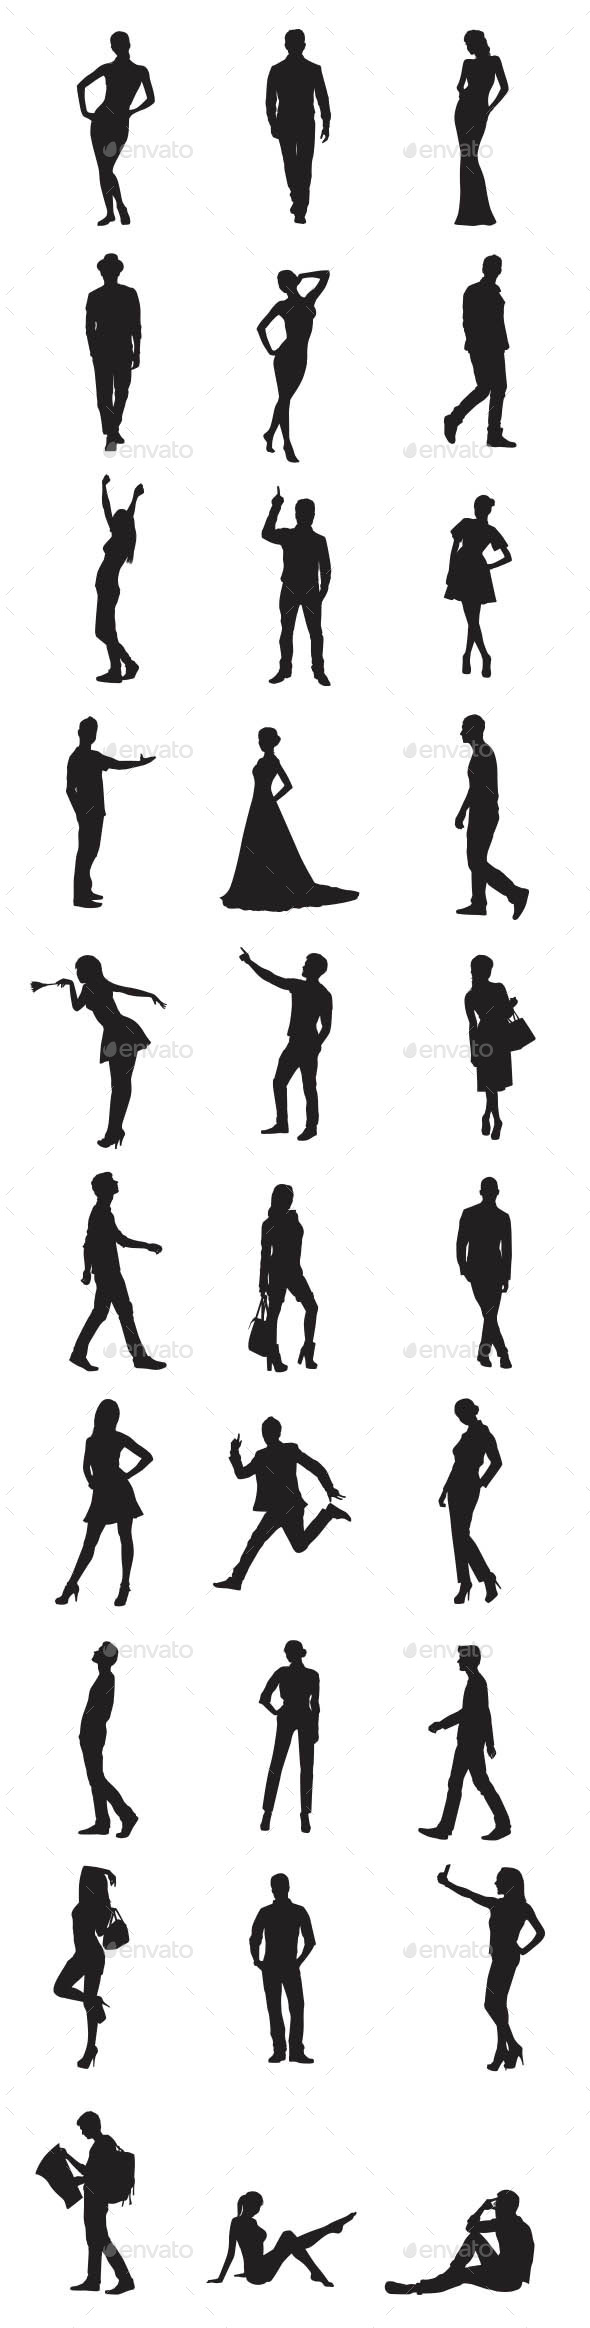 GraphicRiver People Silhouettes 10071722